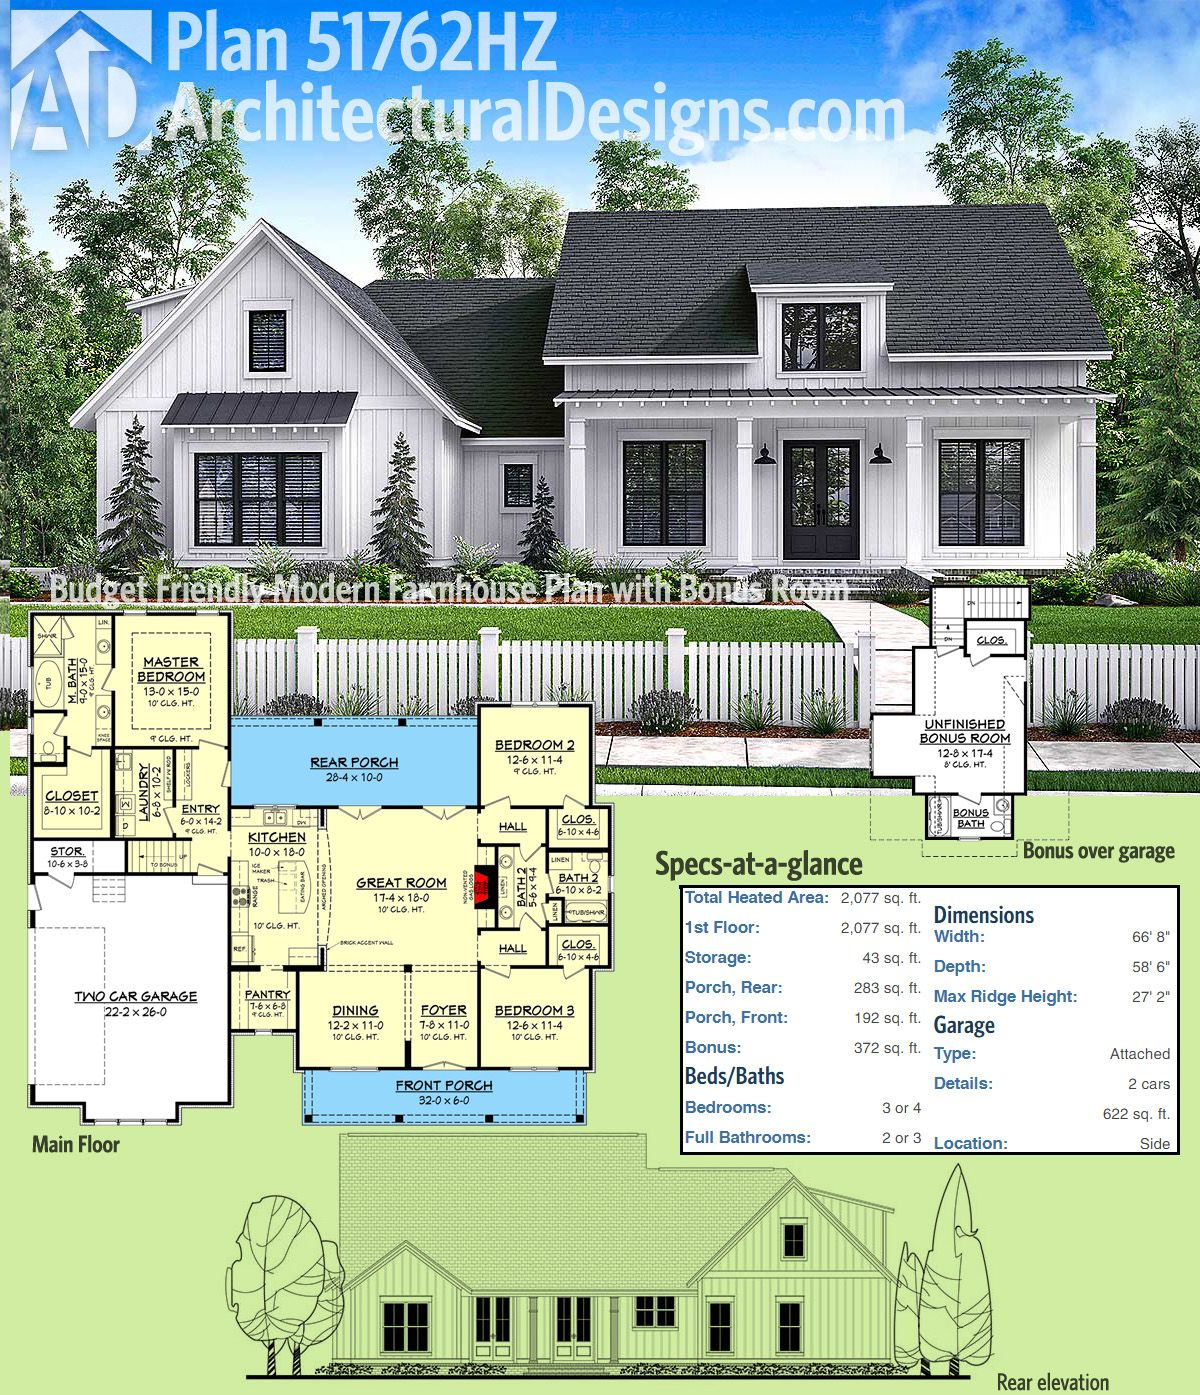 Plan 51762hz budget friendly modern farmhouse plan with Modern farmhouse house plans